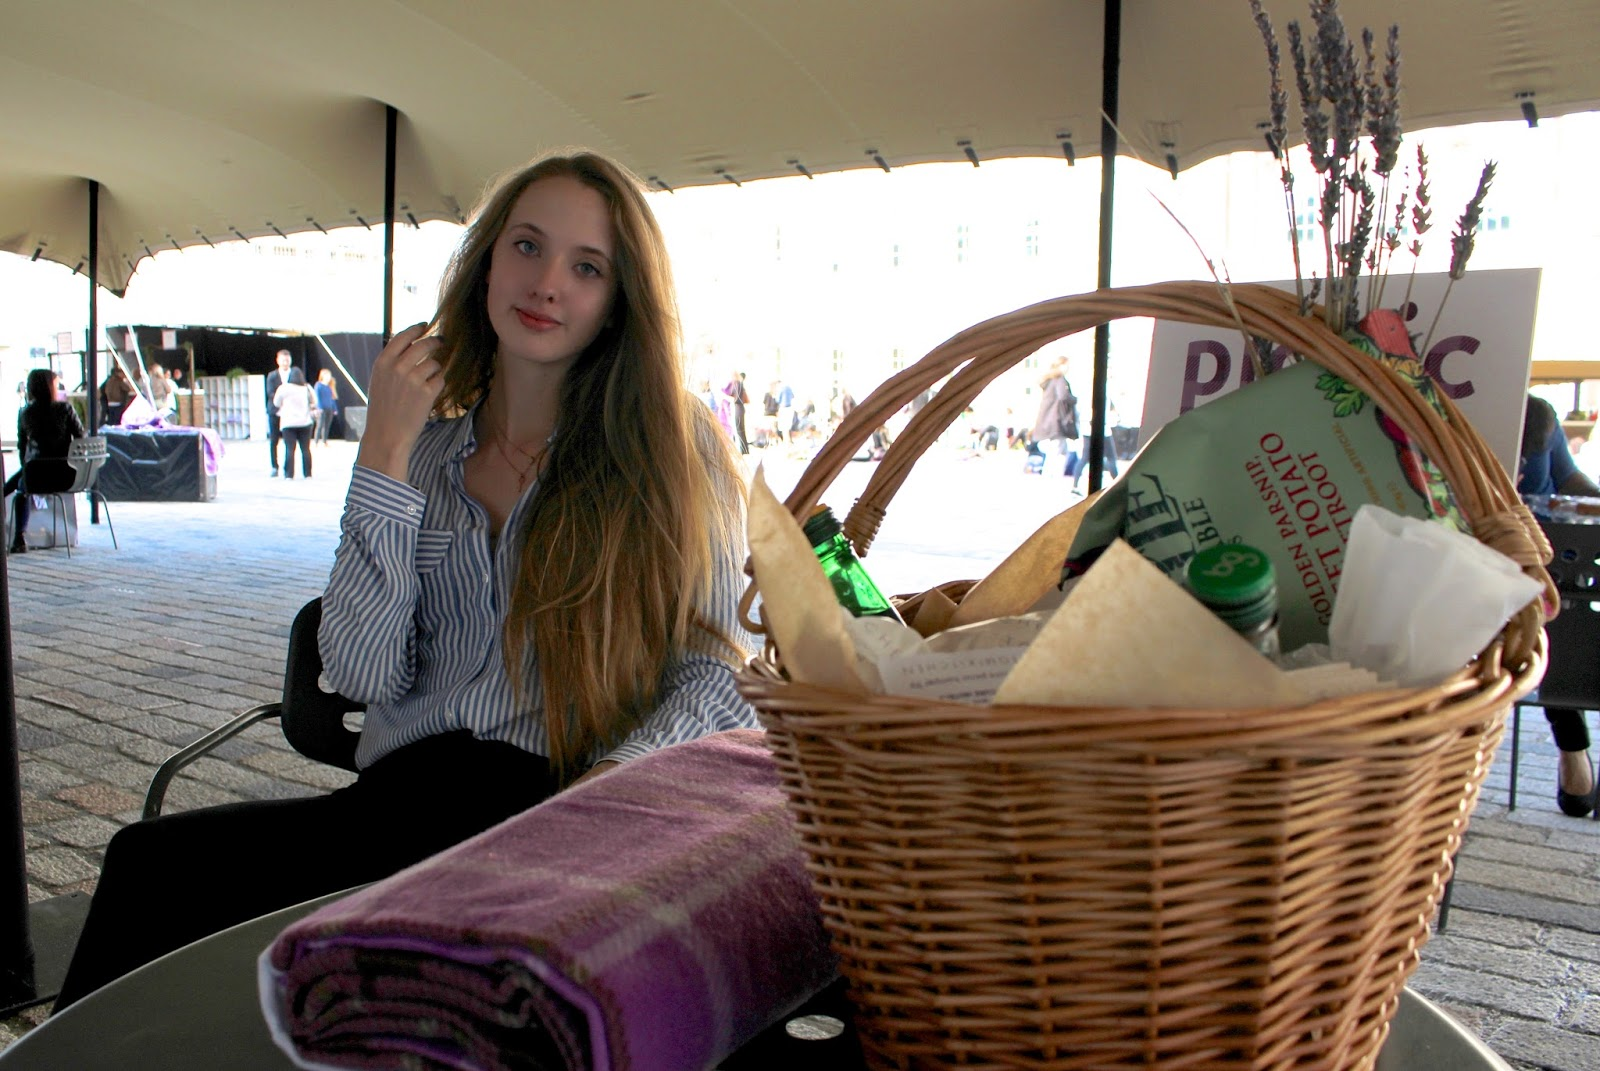 Blogger at Somerset House #PicnicWithMercure event